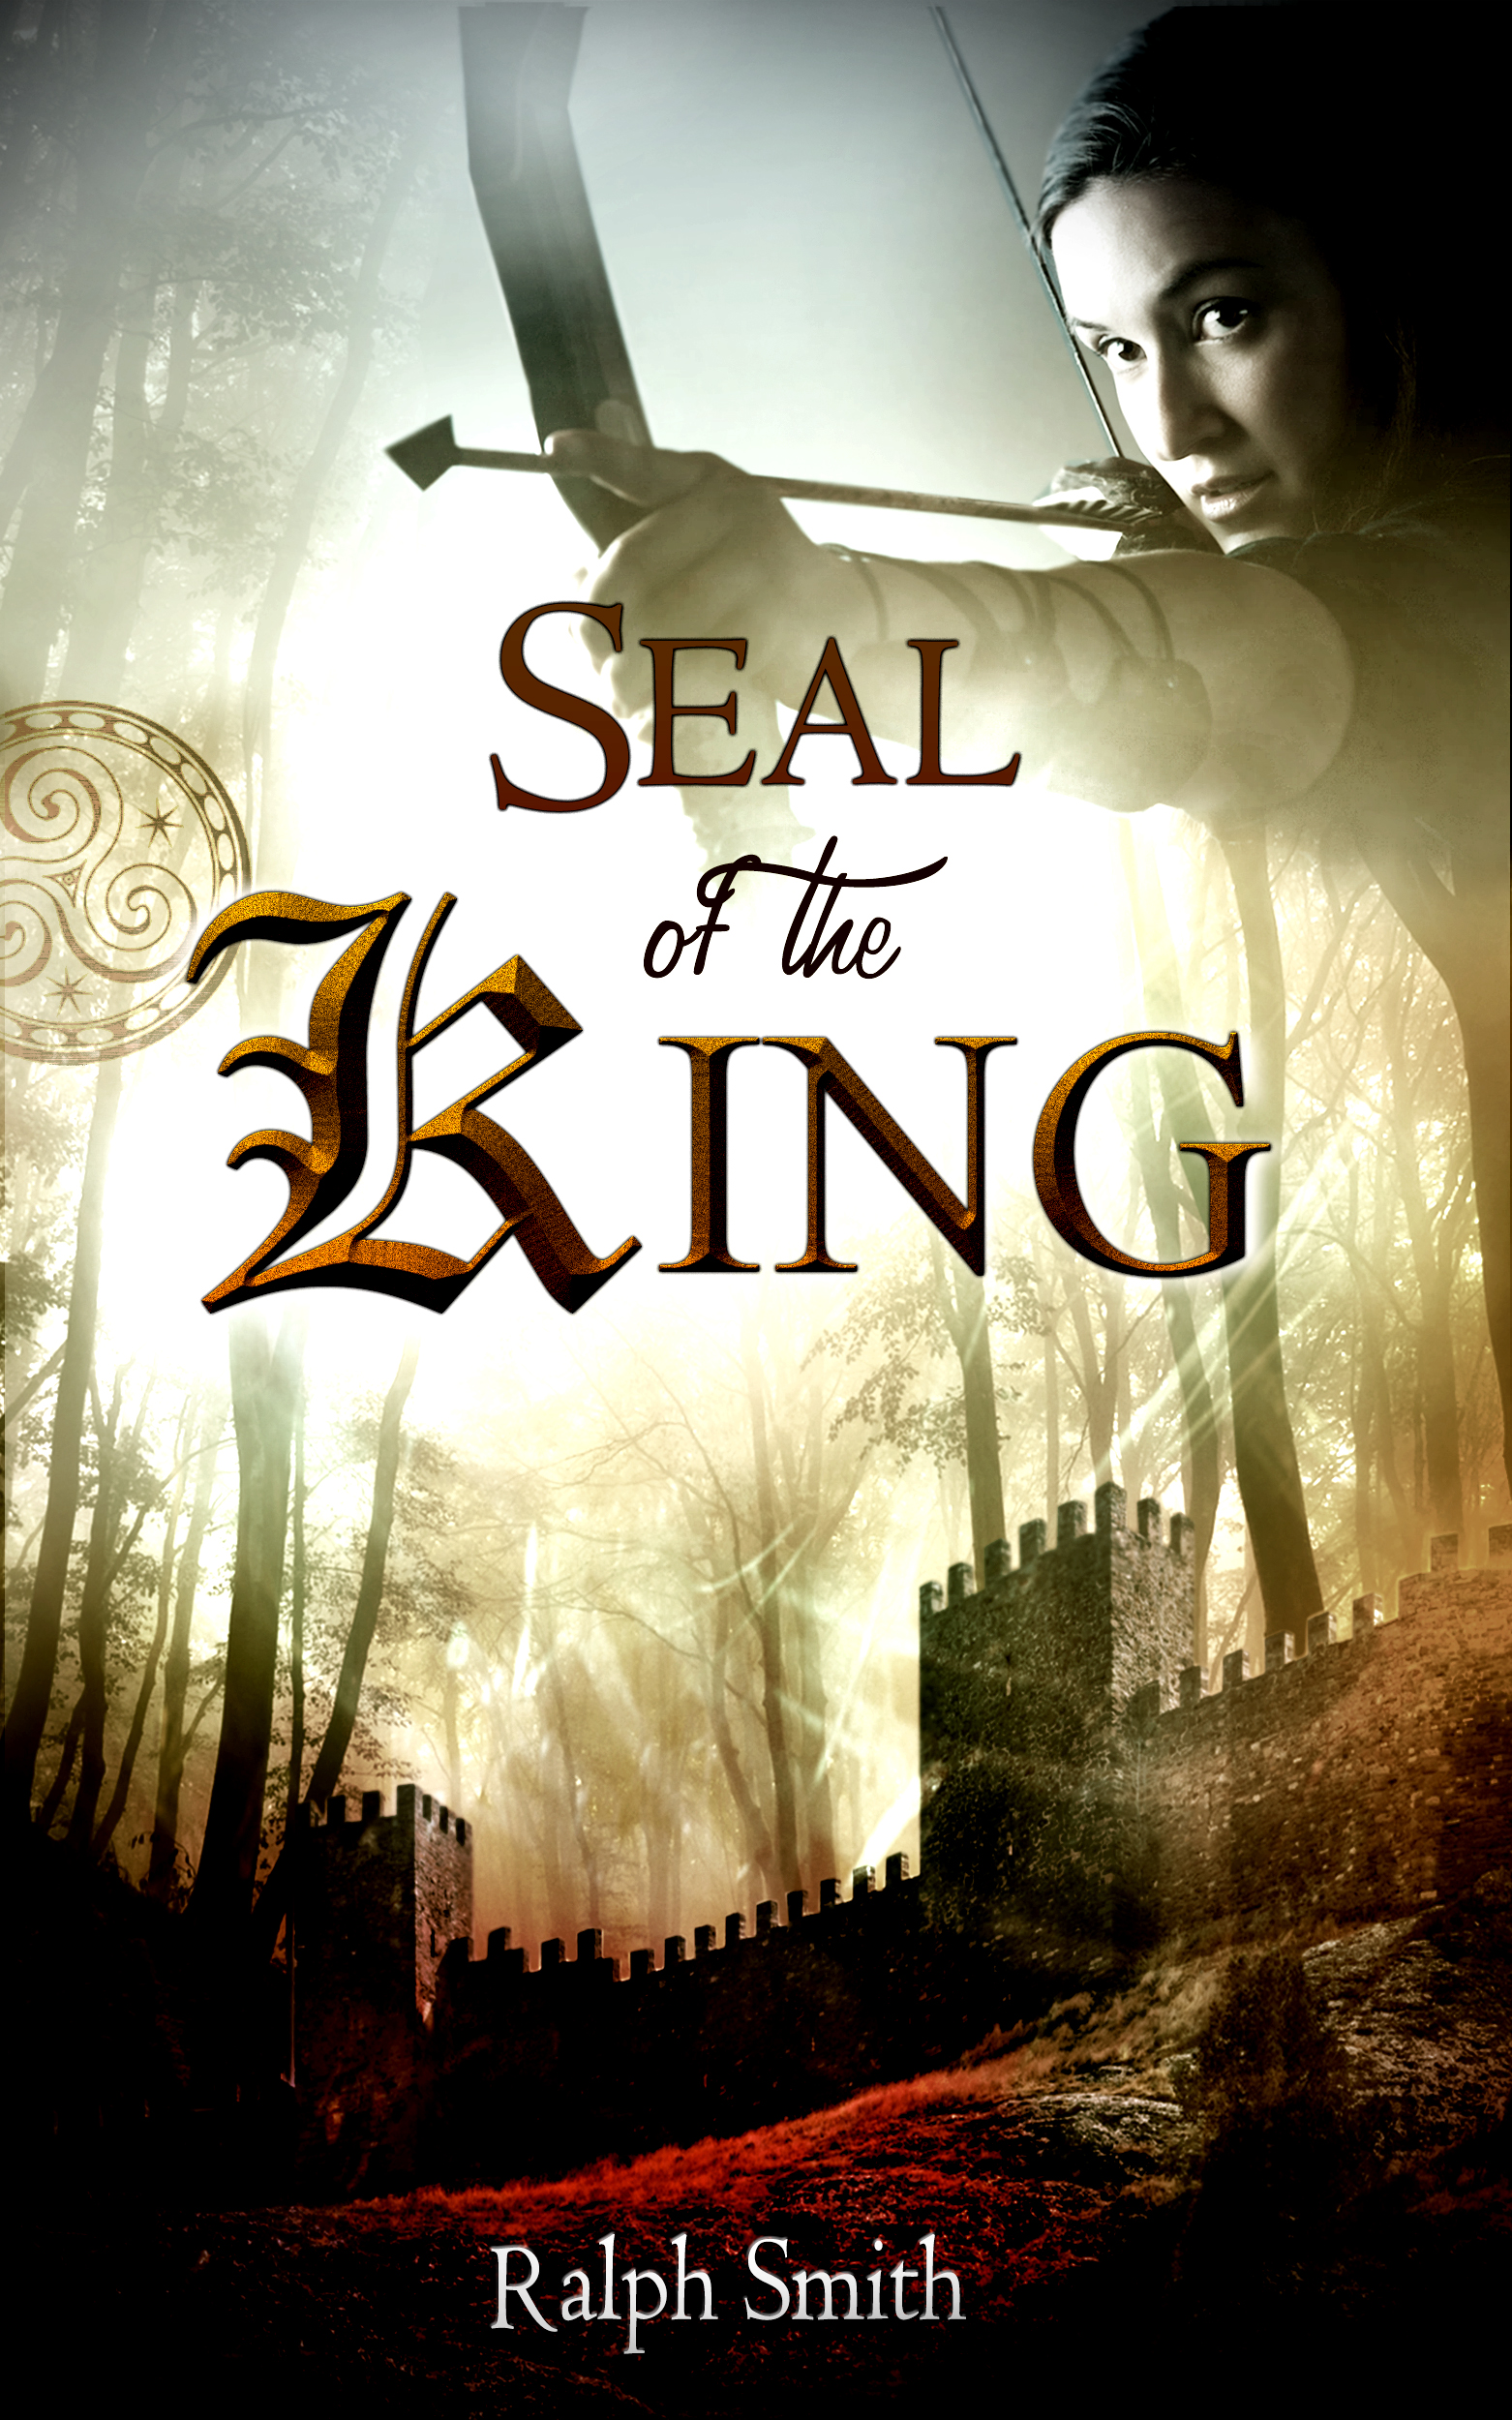 5.0 out of 5 stars Great Christian fantasy book!